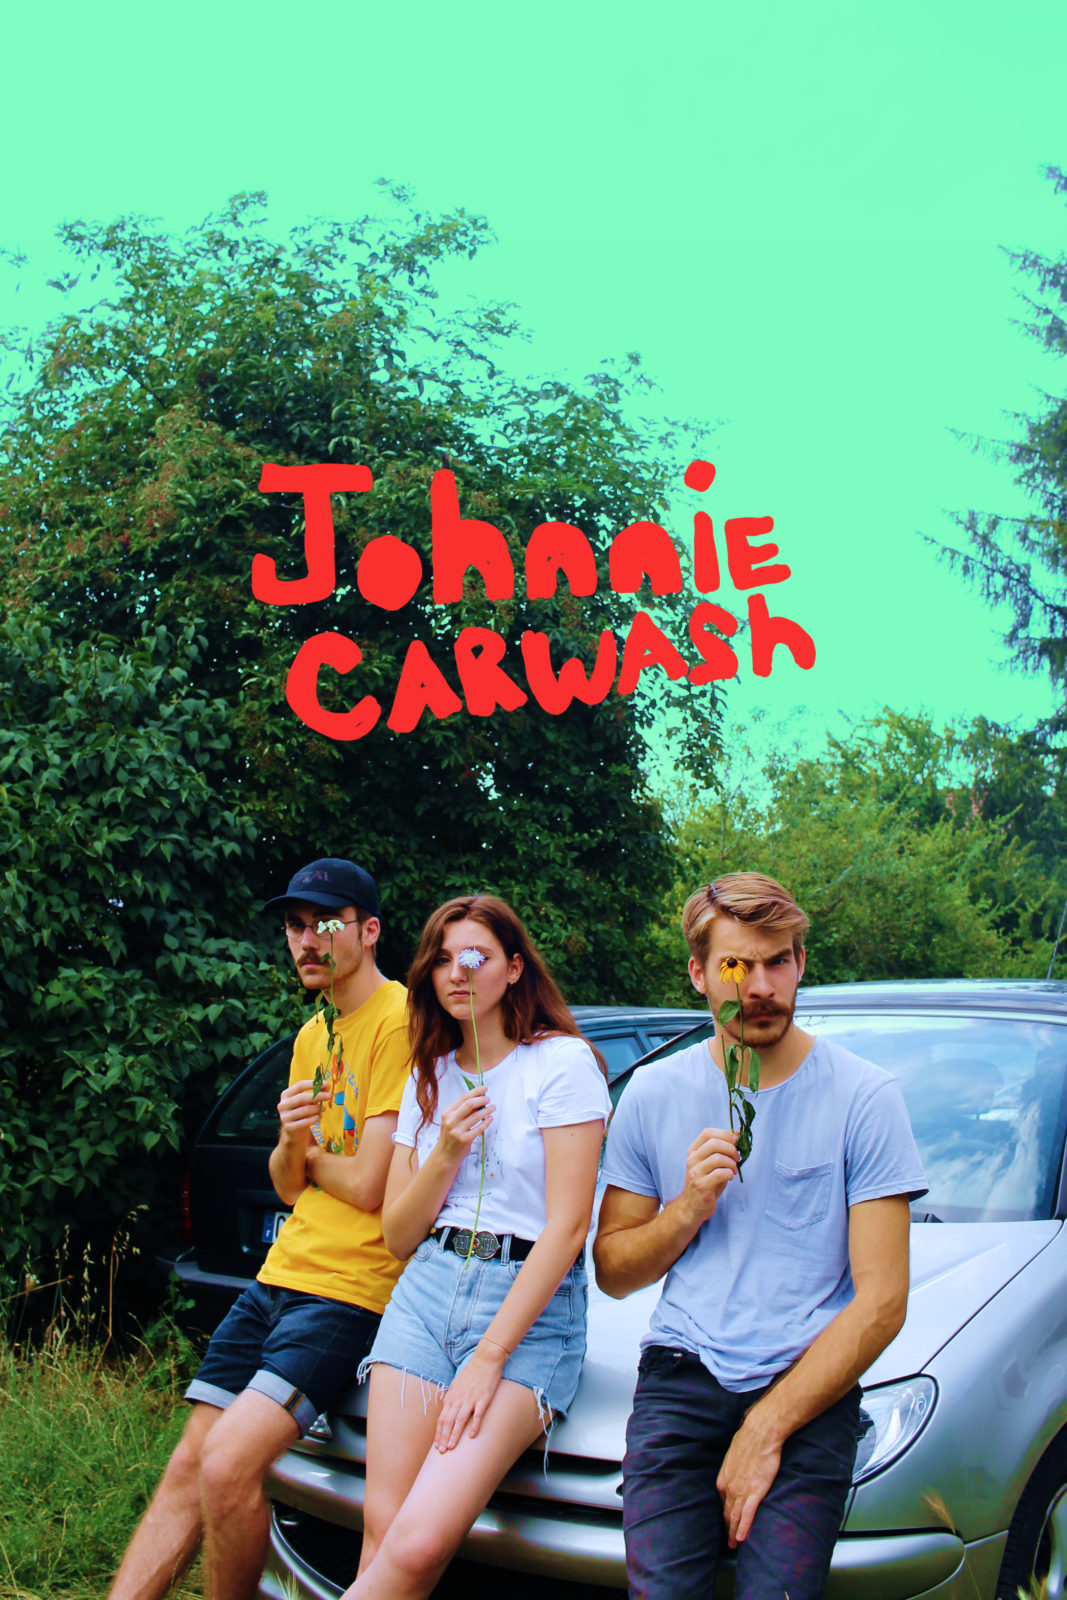 JOHNNIE CARWASH